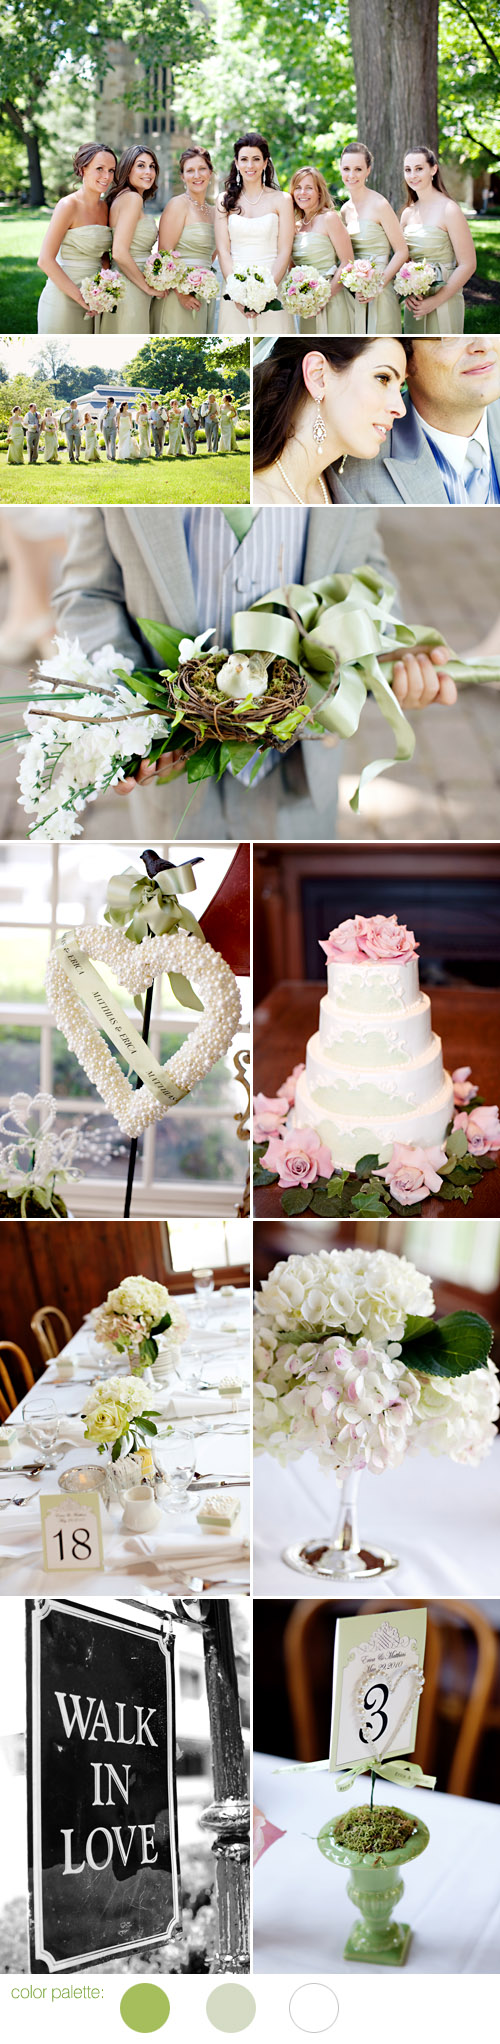 Michigan garden wedding style, Wellers Carriage House, photos by Jen Lynne Photography